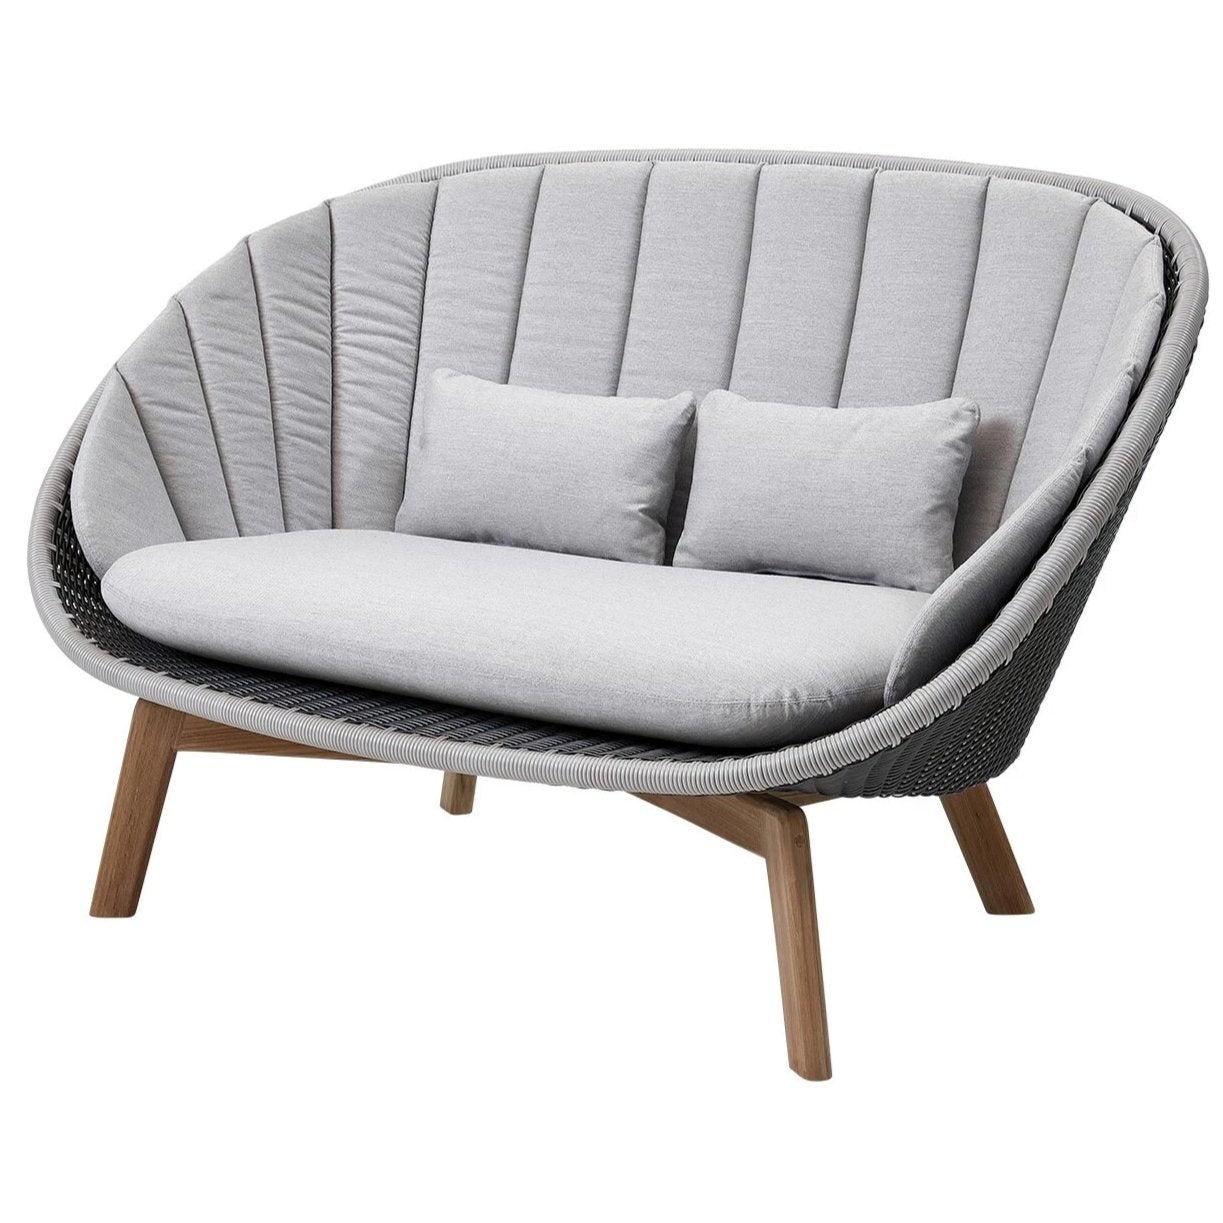 Peacock 2-Seater Sofa